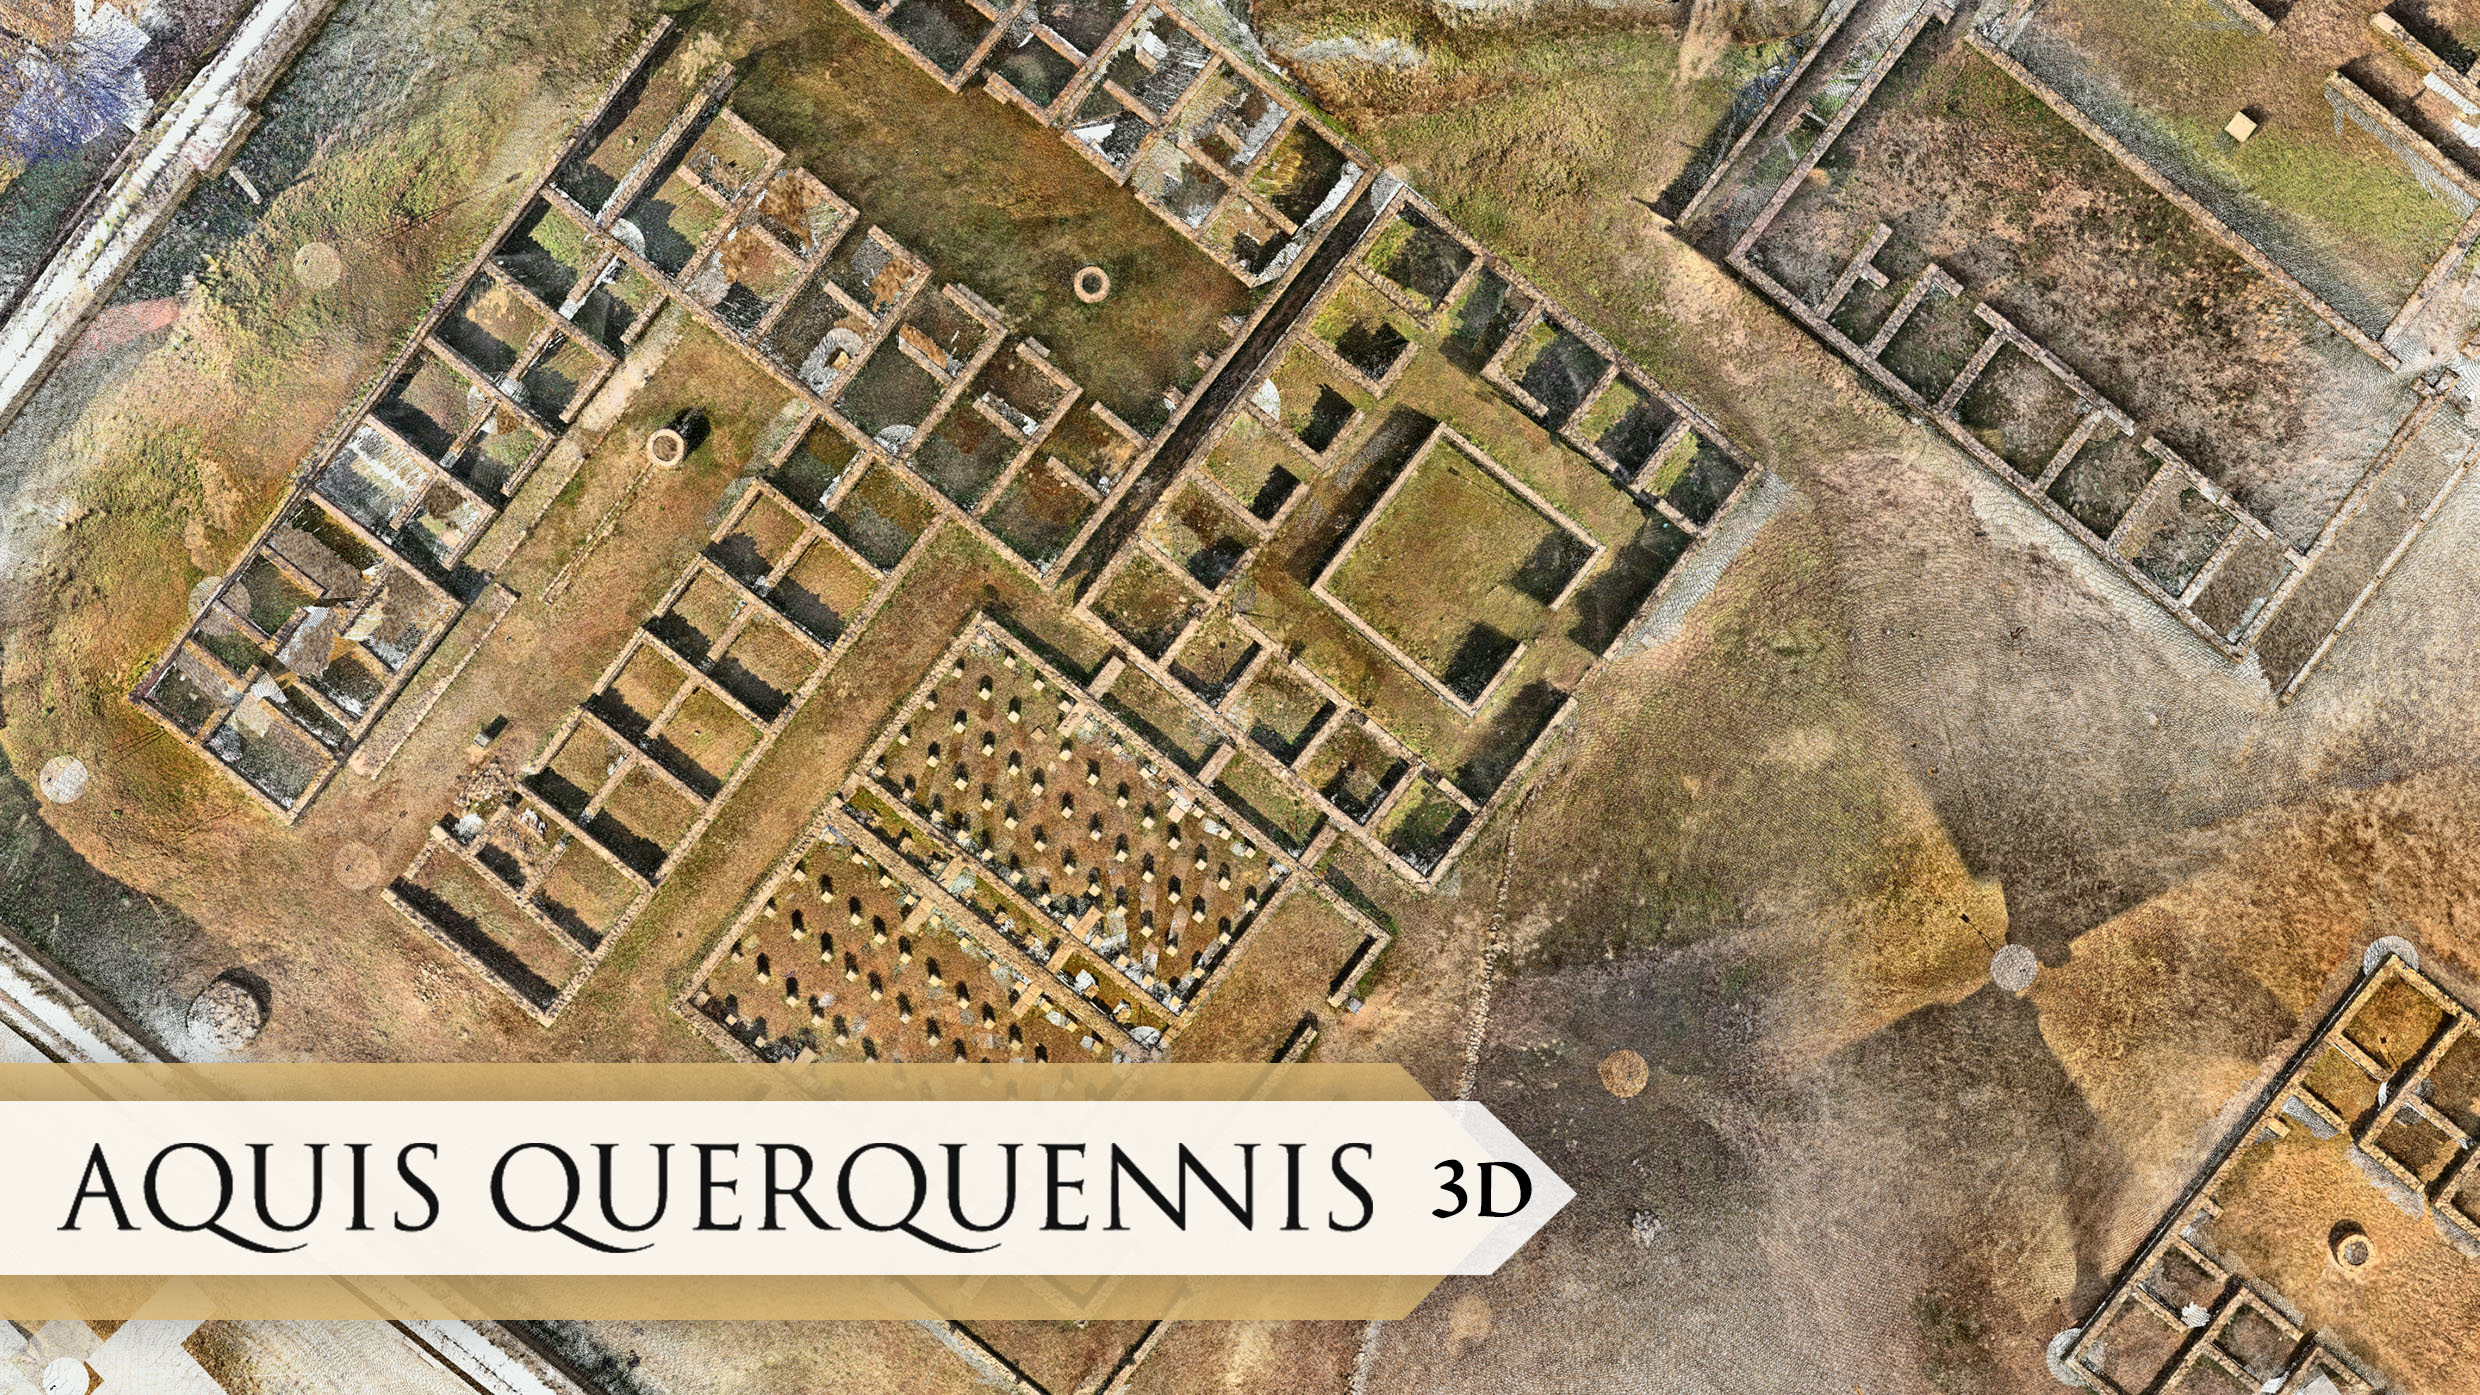 Point cloud of one of the Aquis Querquennis areas obtained after laser scanning of the complex.